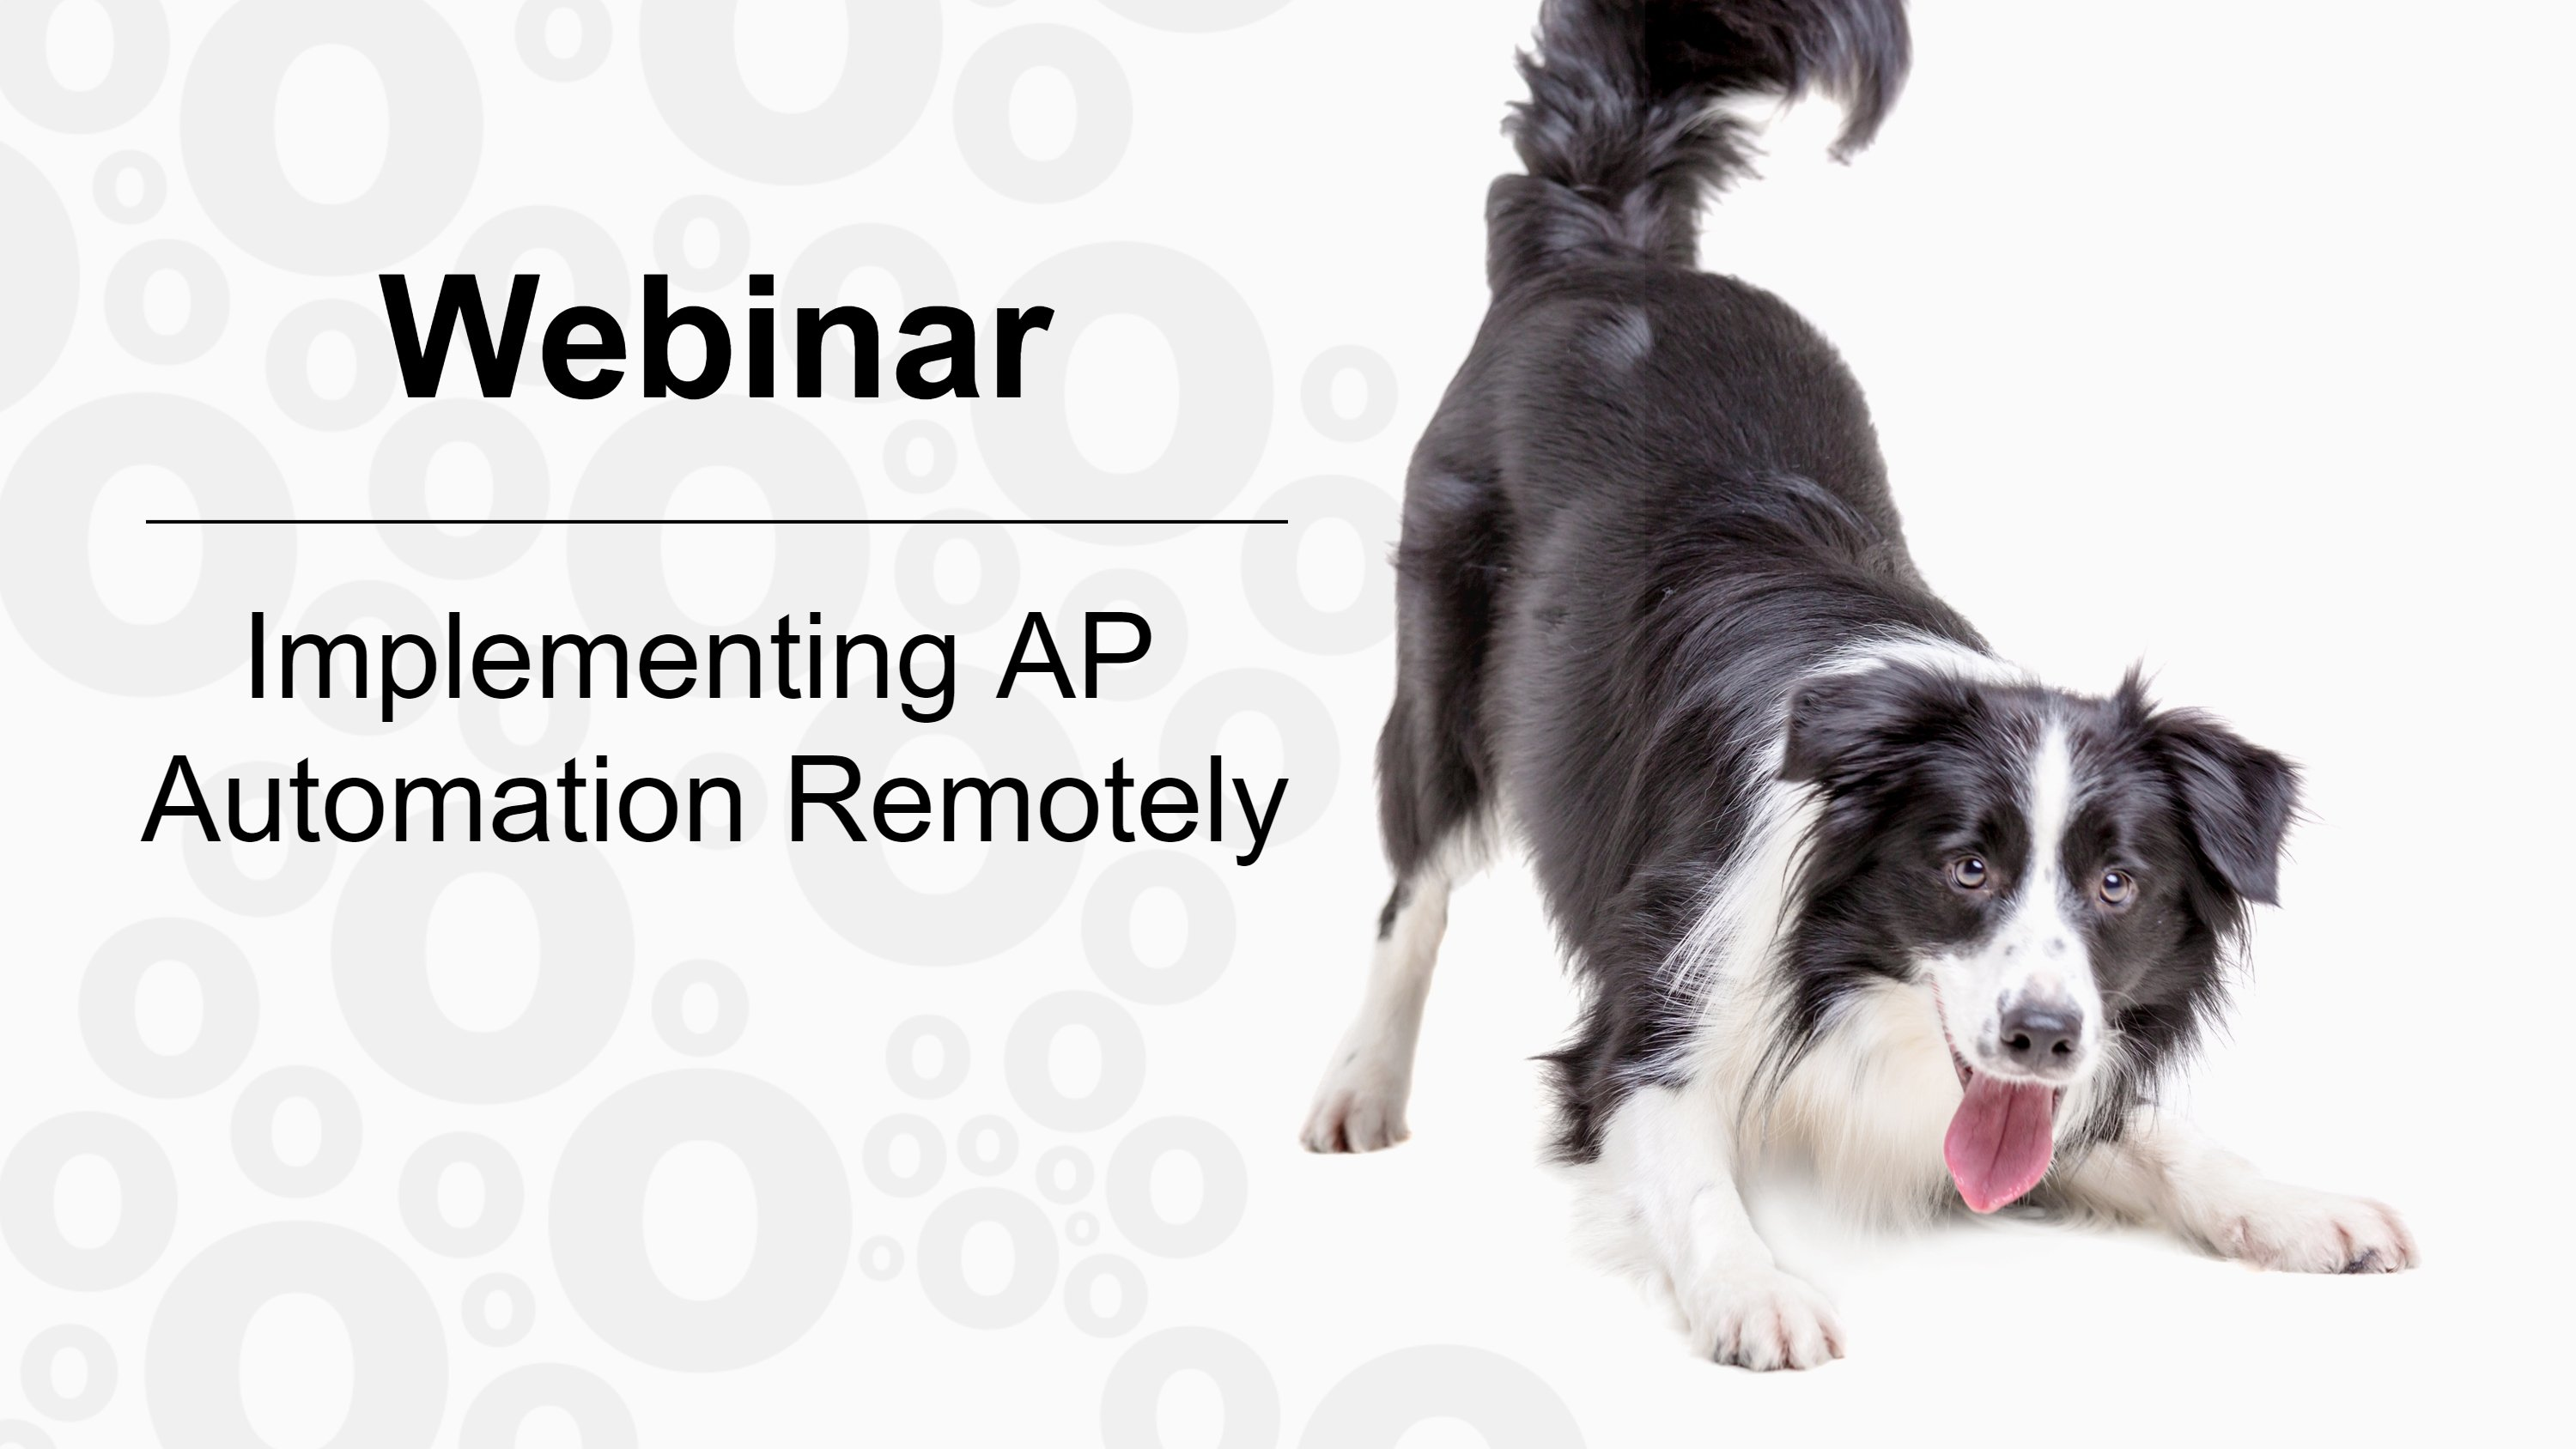 Implementing AP Automation Remotely